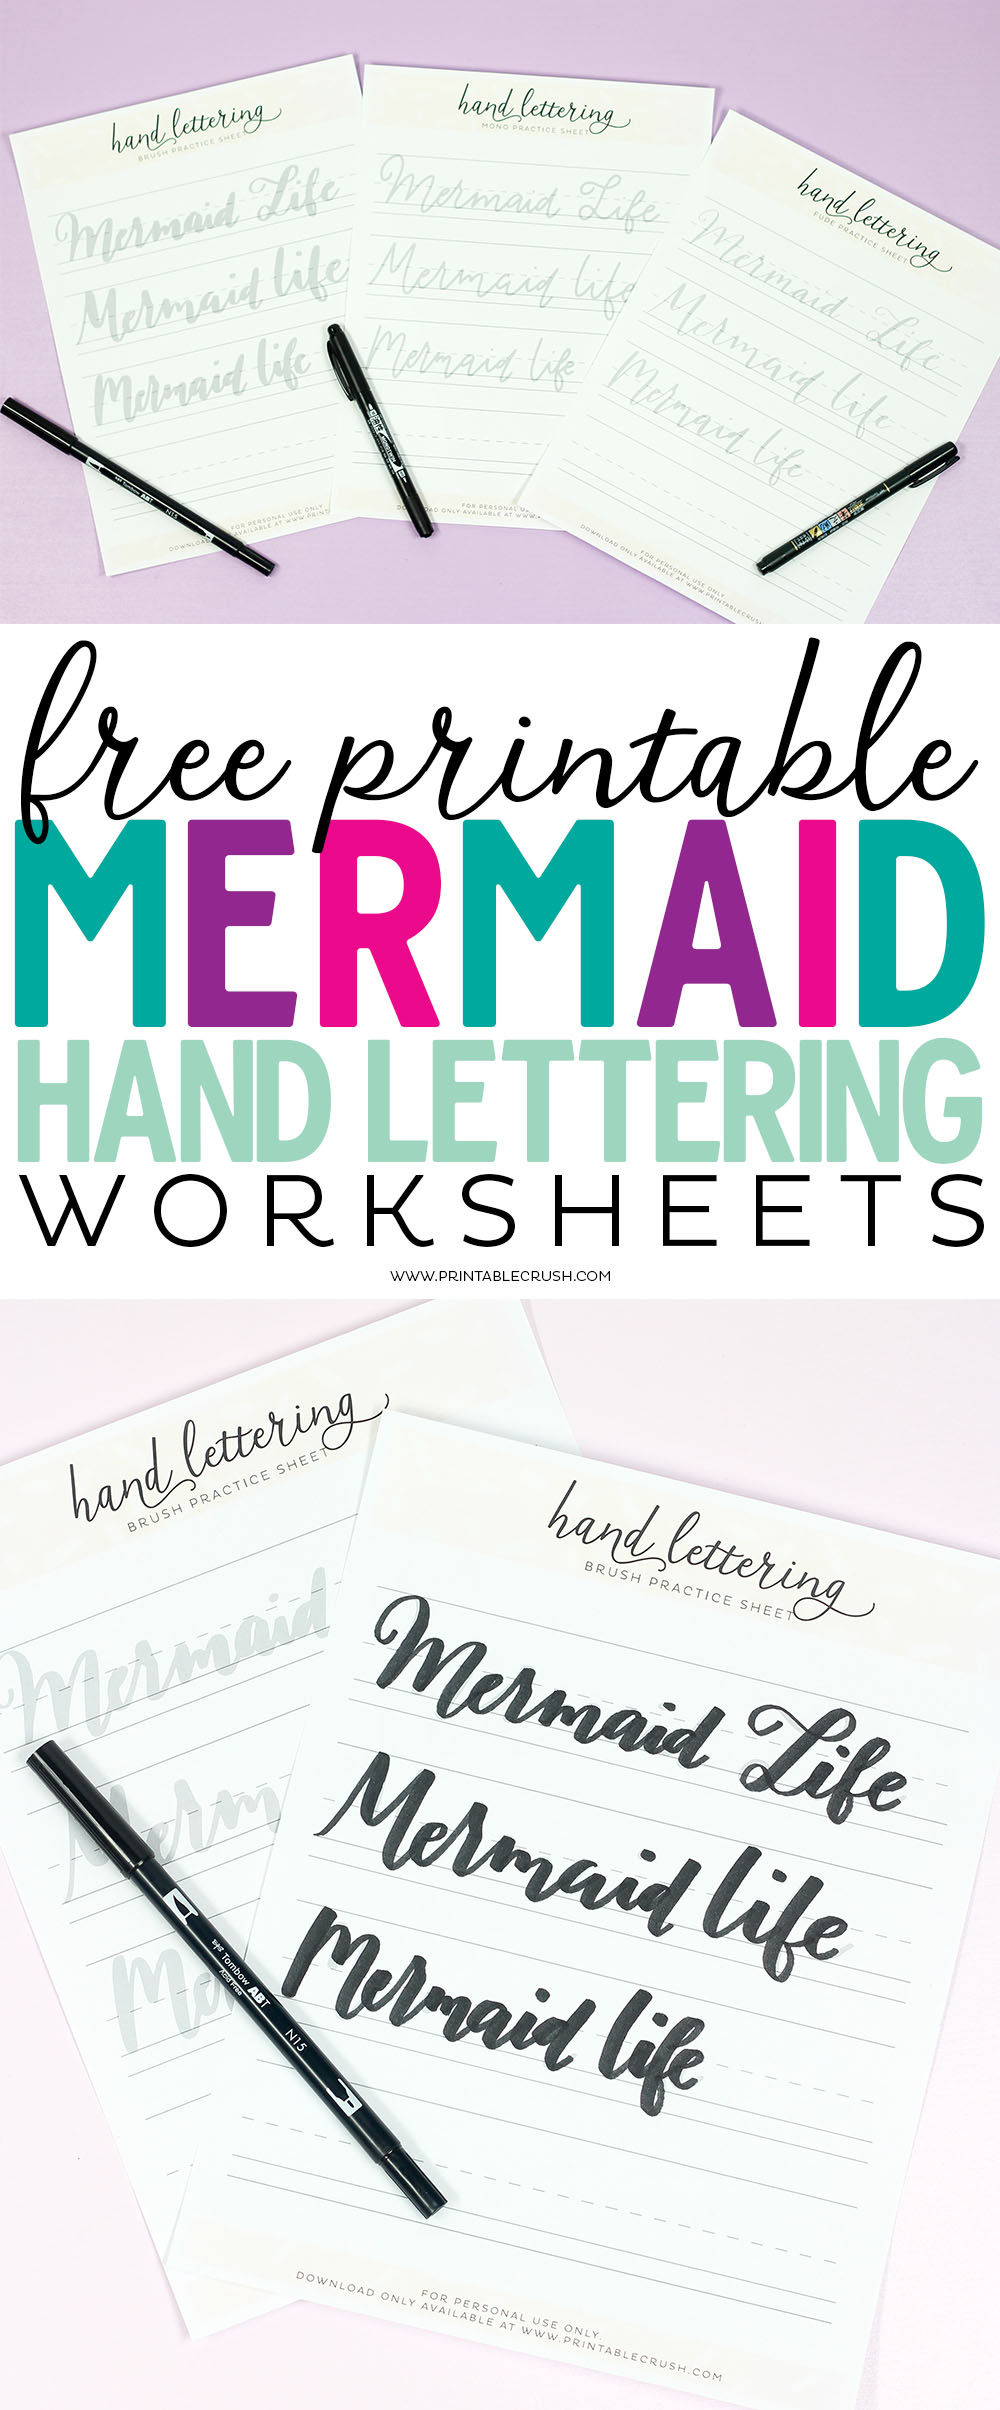 picture relating to Printable Lettering titled Totally free Printable Mermaid Hand Lettering Worksheets - Printable